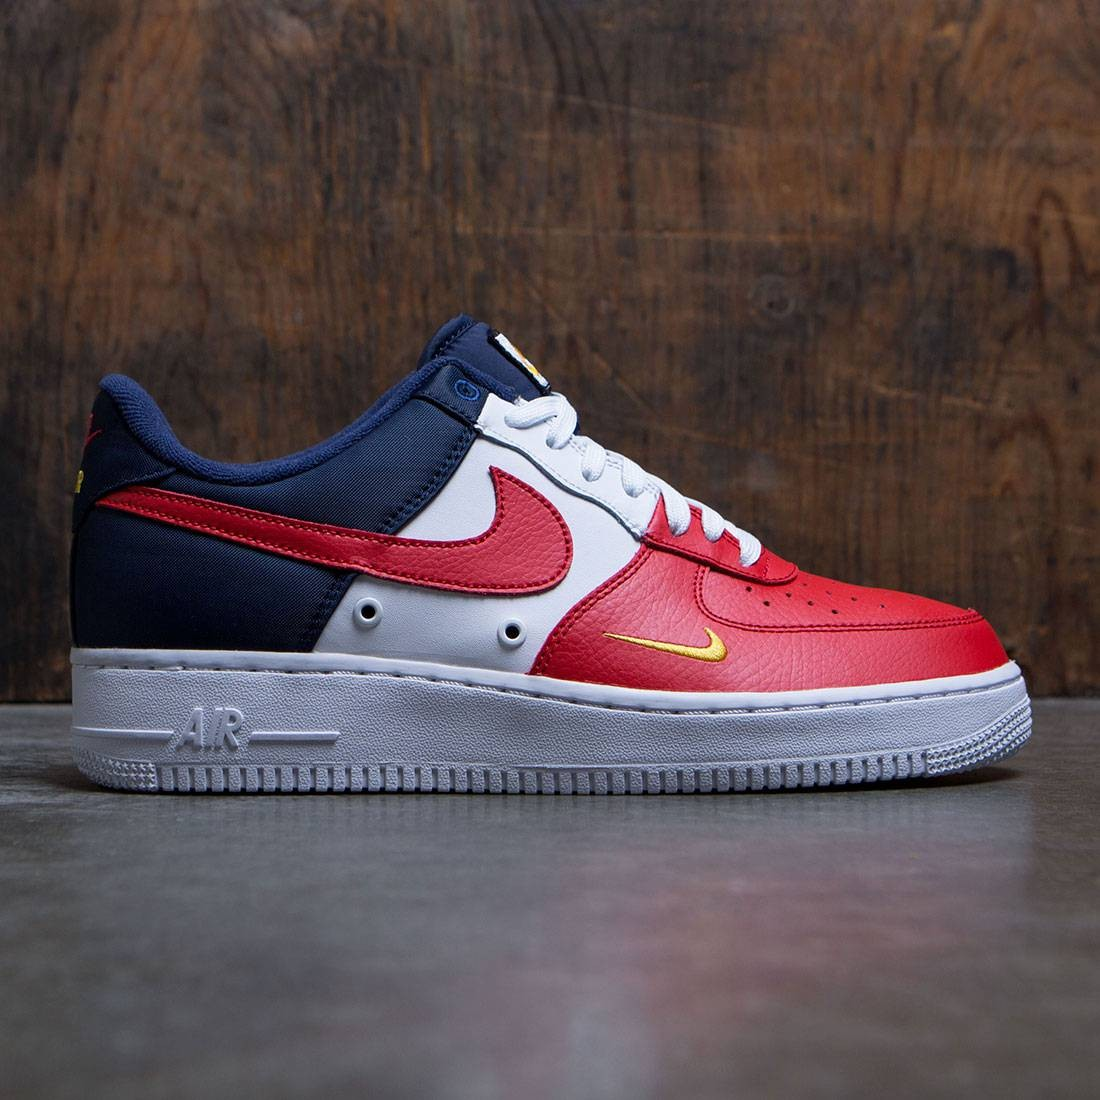 3d1a53542aad nike men air force 1  07 lv8 university red university red